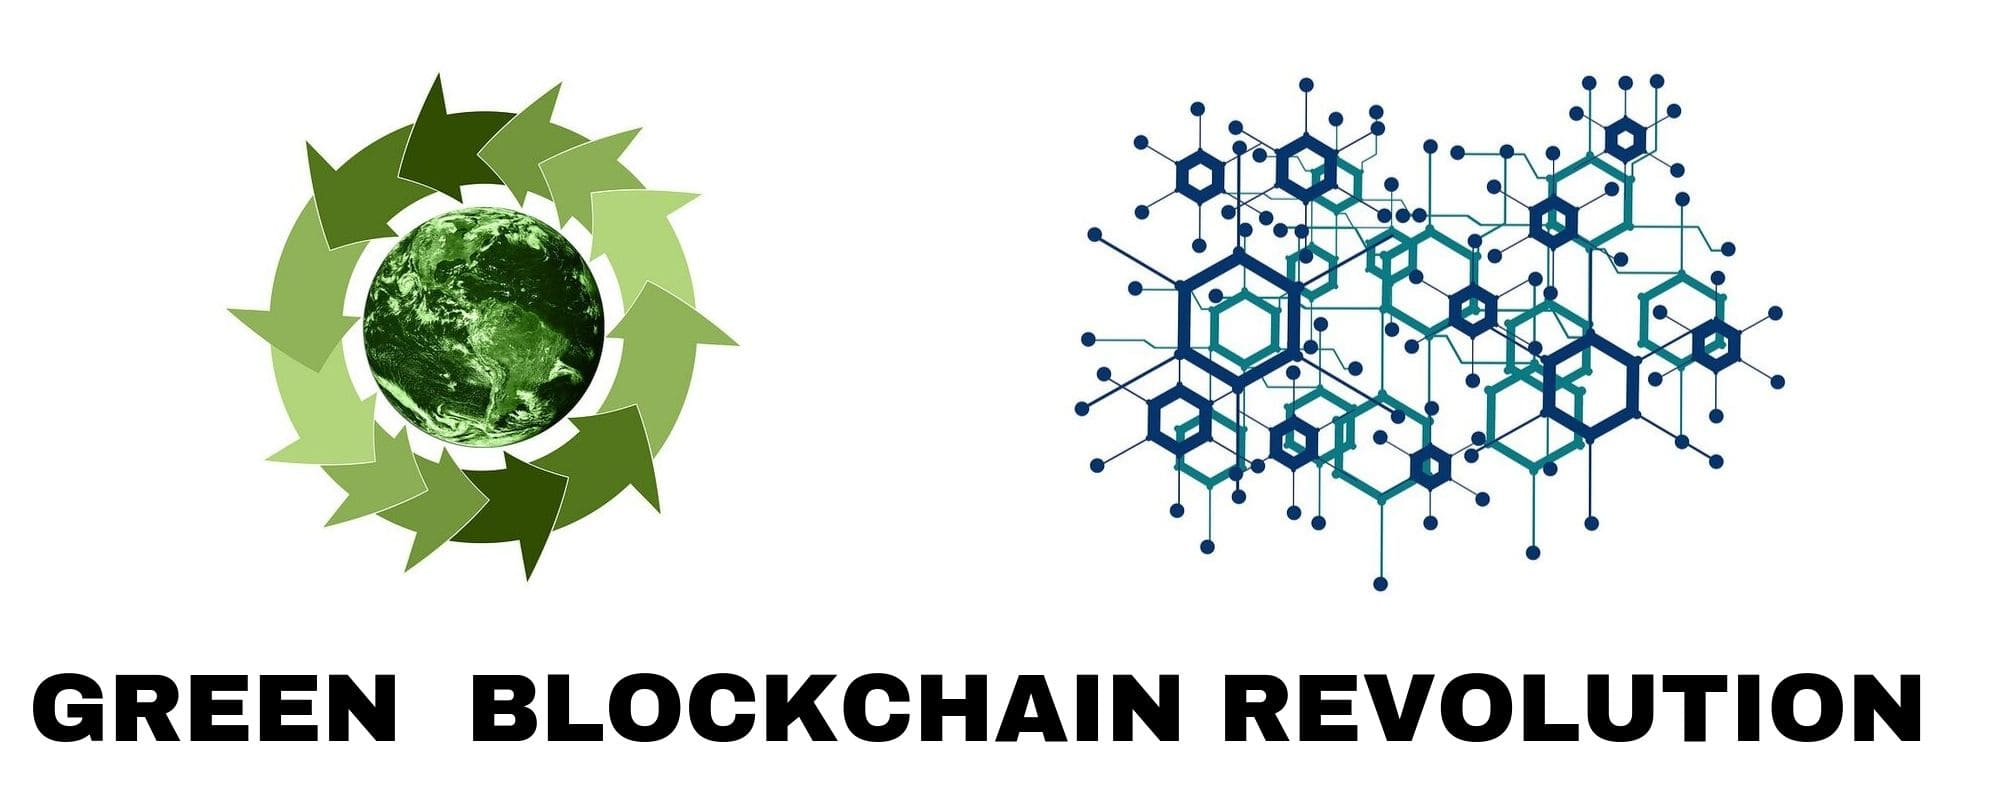 The green blockchain revolution to trace raw materials